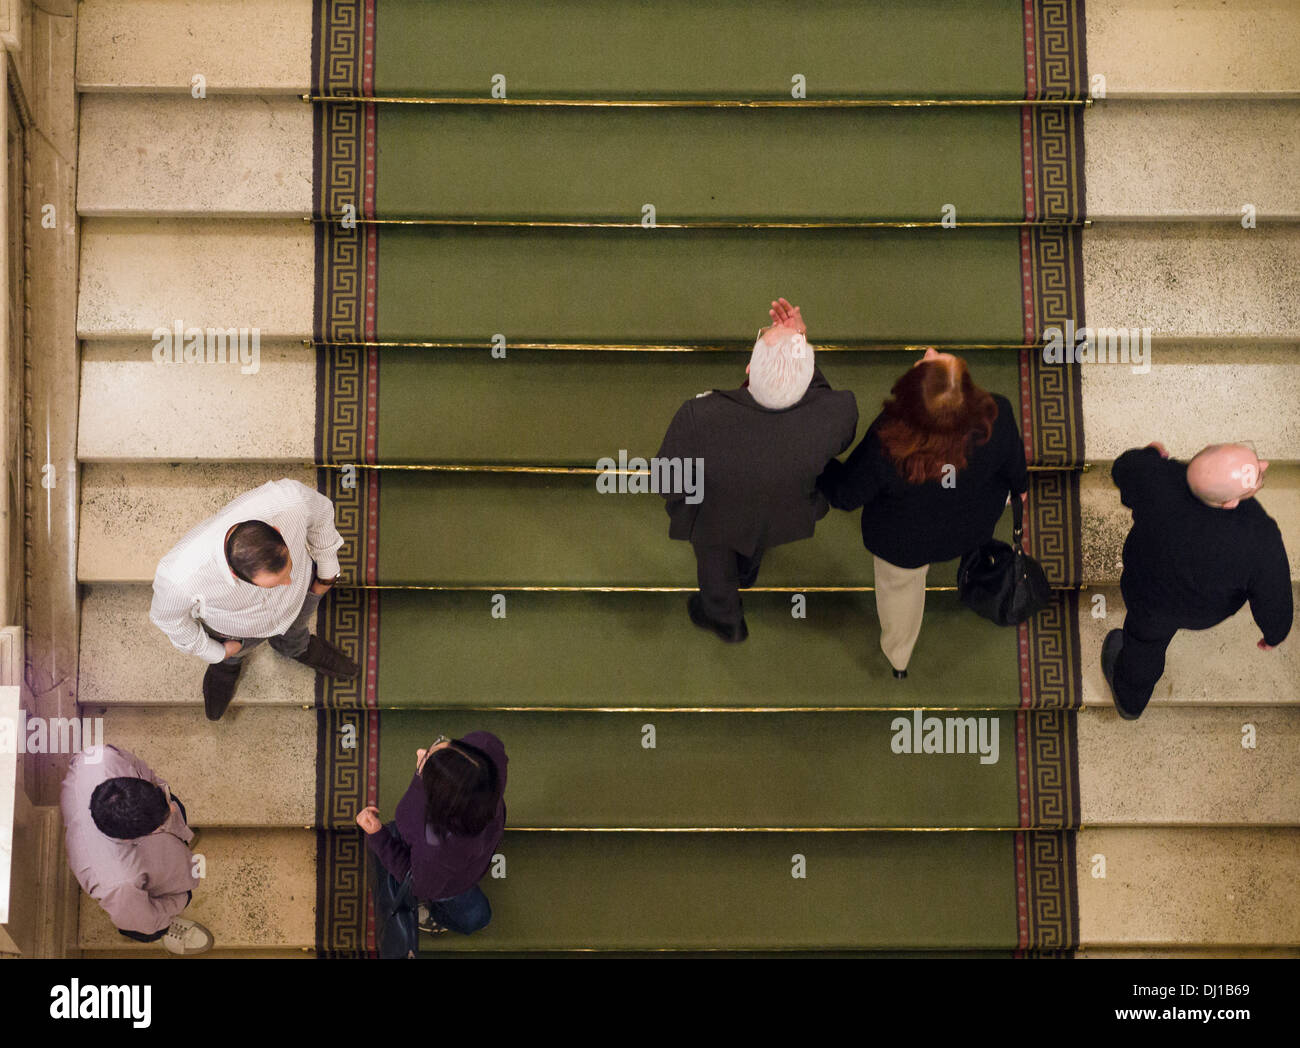 Opera Patrons chat and climb the marble stair. Opera goers discuss the opera at the intermission and climb back to their seats. - Stock Image